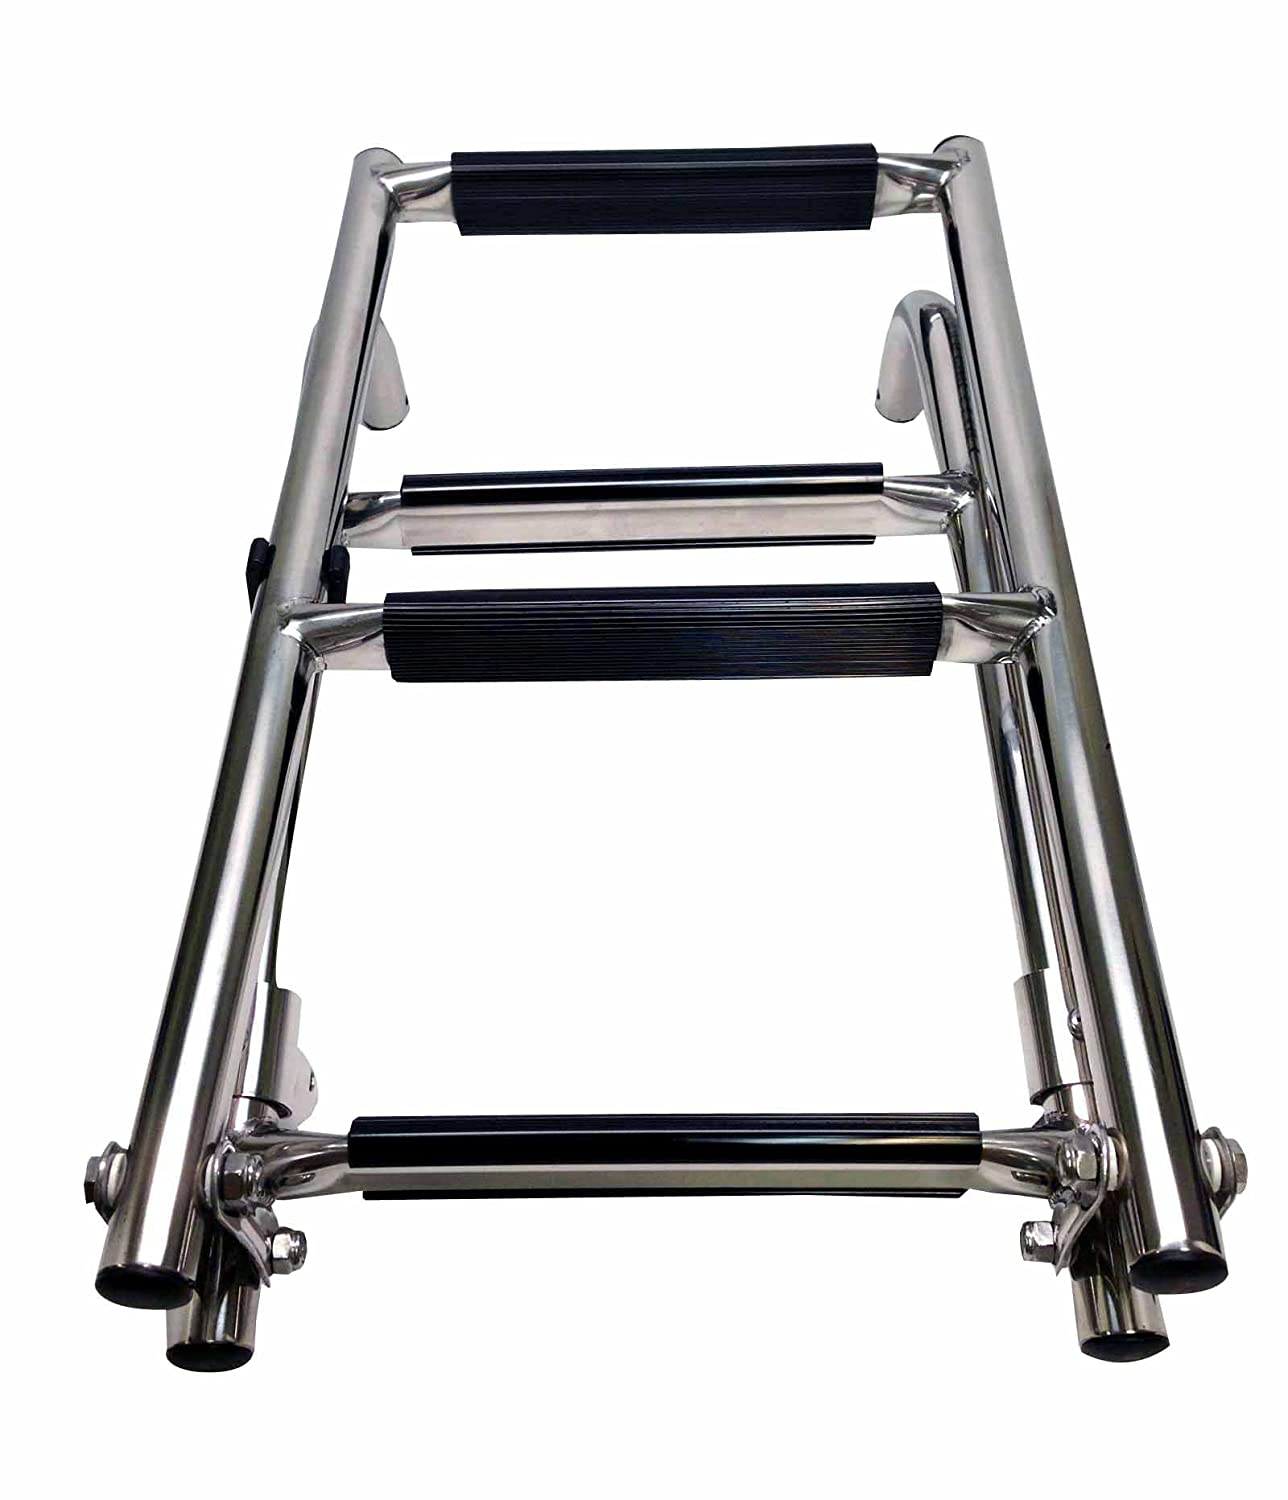 Pactrade Marine Boat Foldable Stainless Steel Four Step Ladders Stern Mount with Rubber Grips